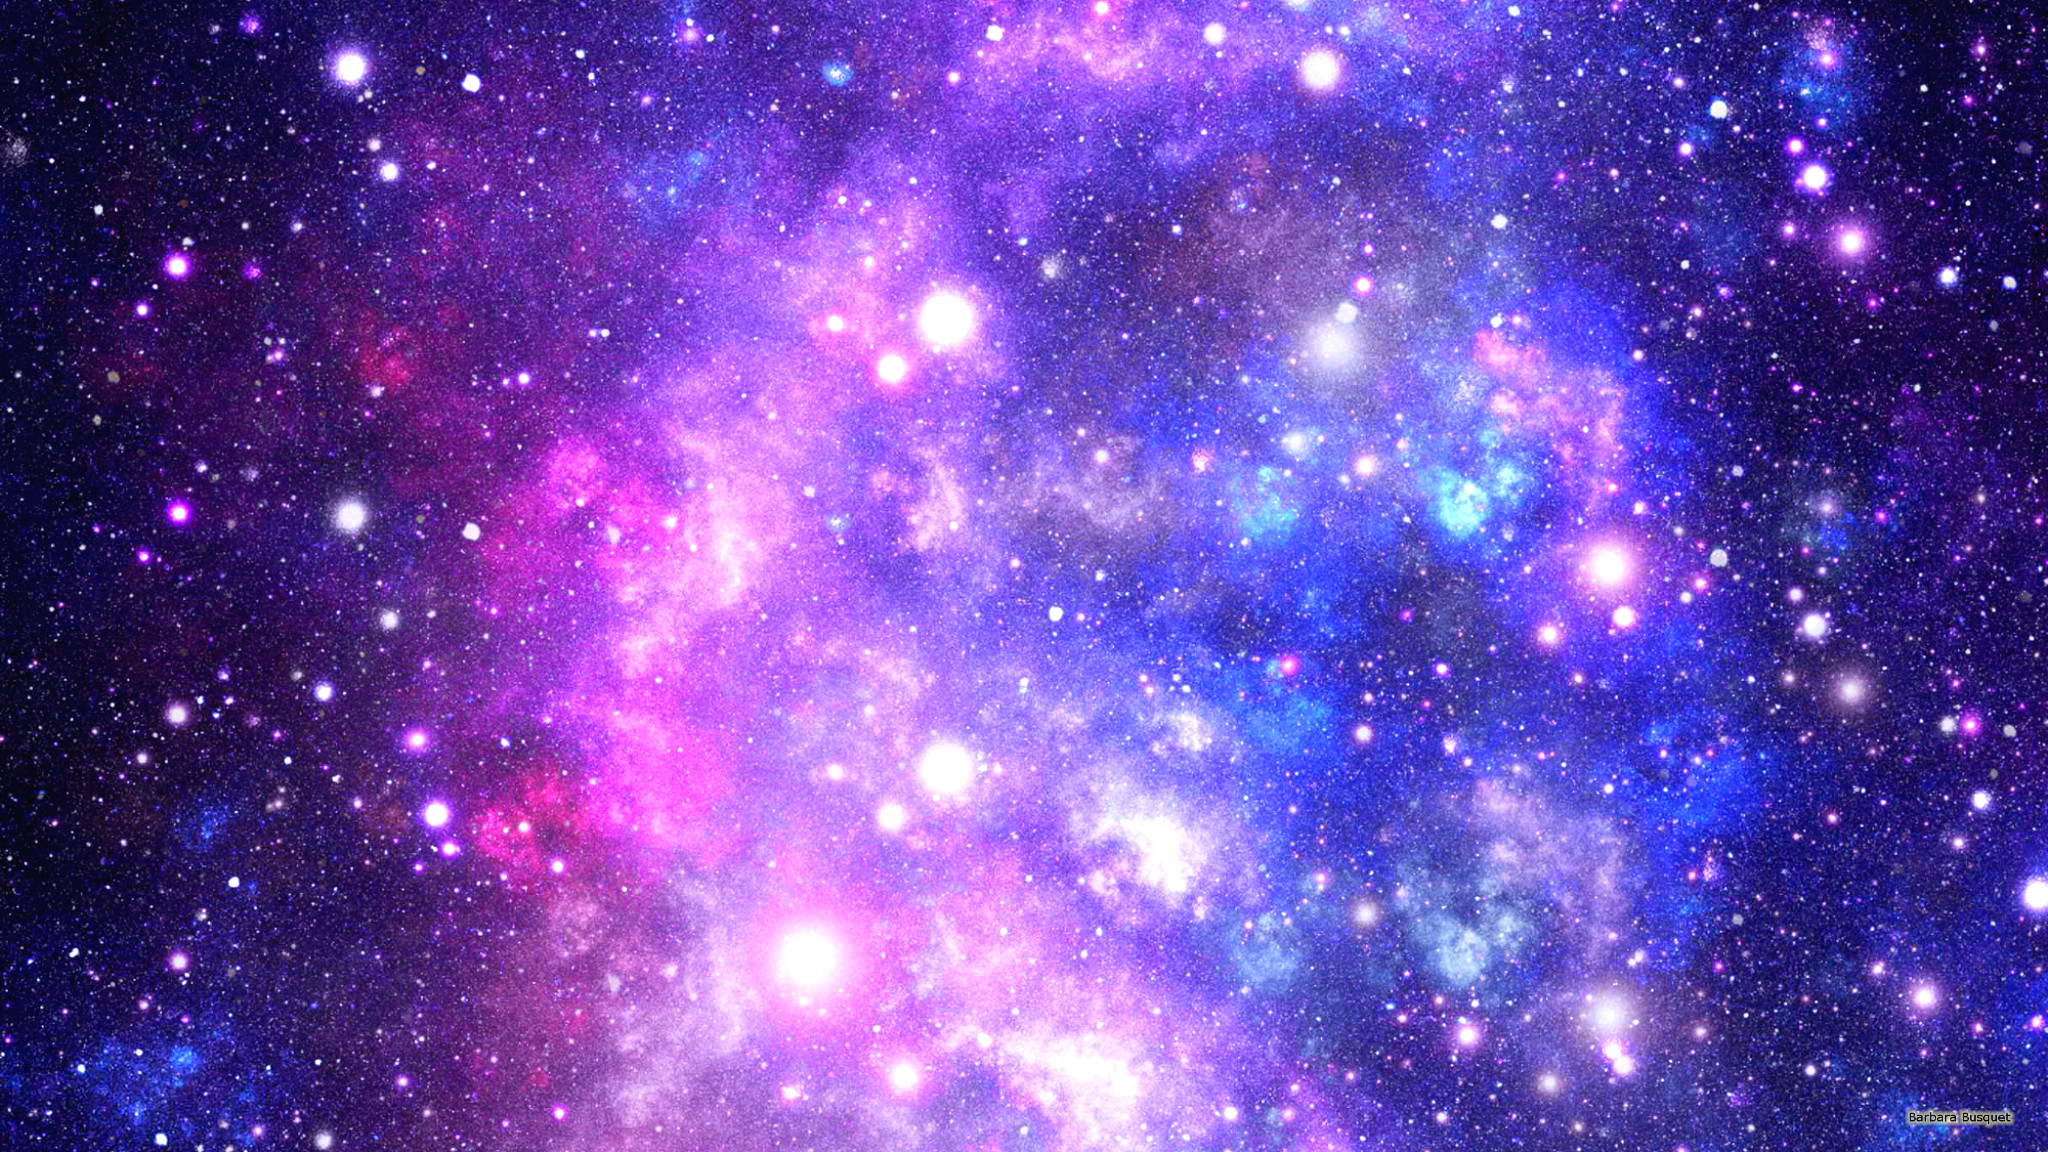 2048x1152 - Galaxy Wallpapers 14